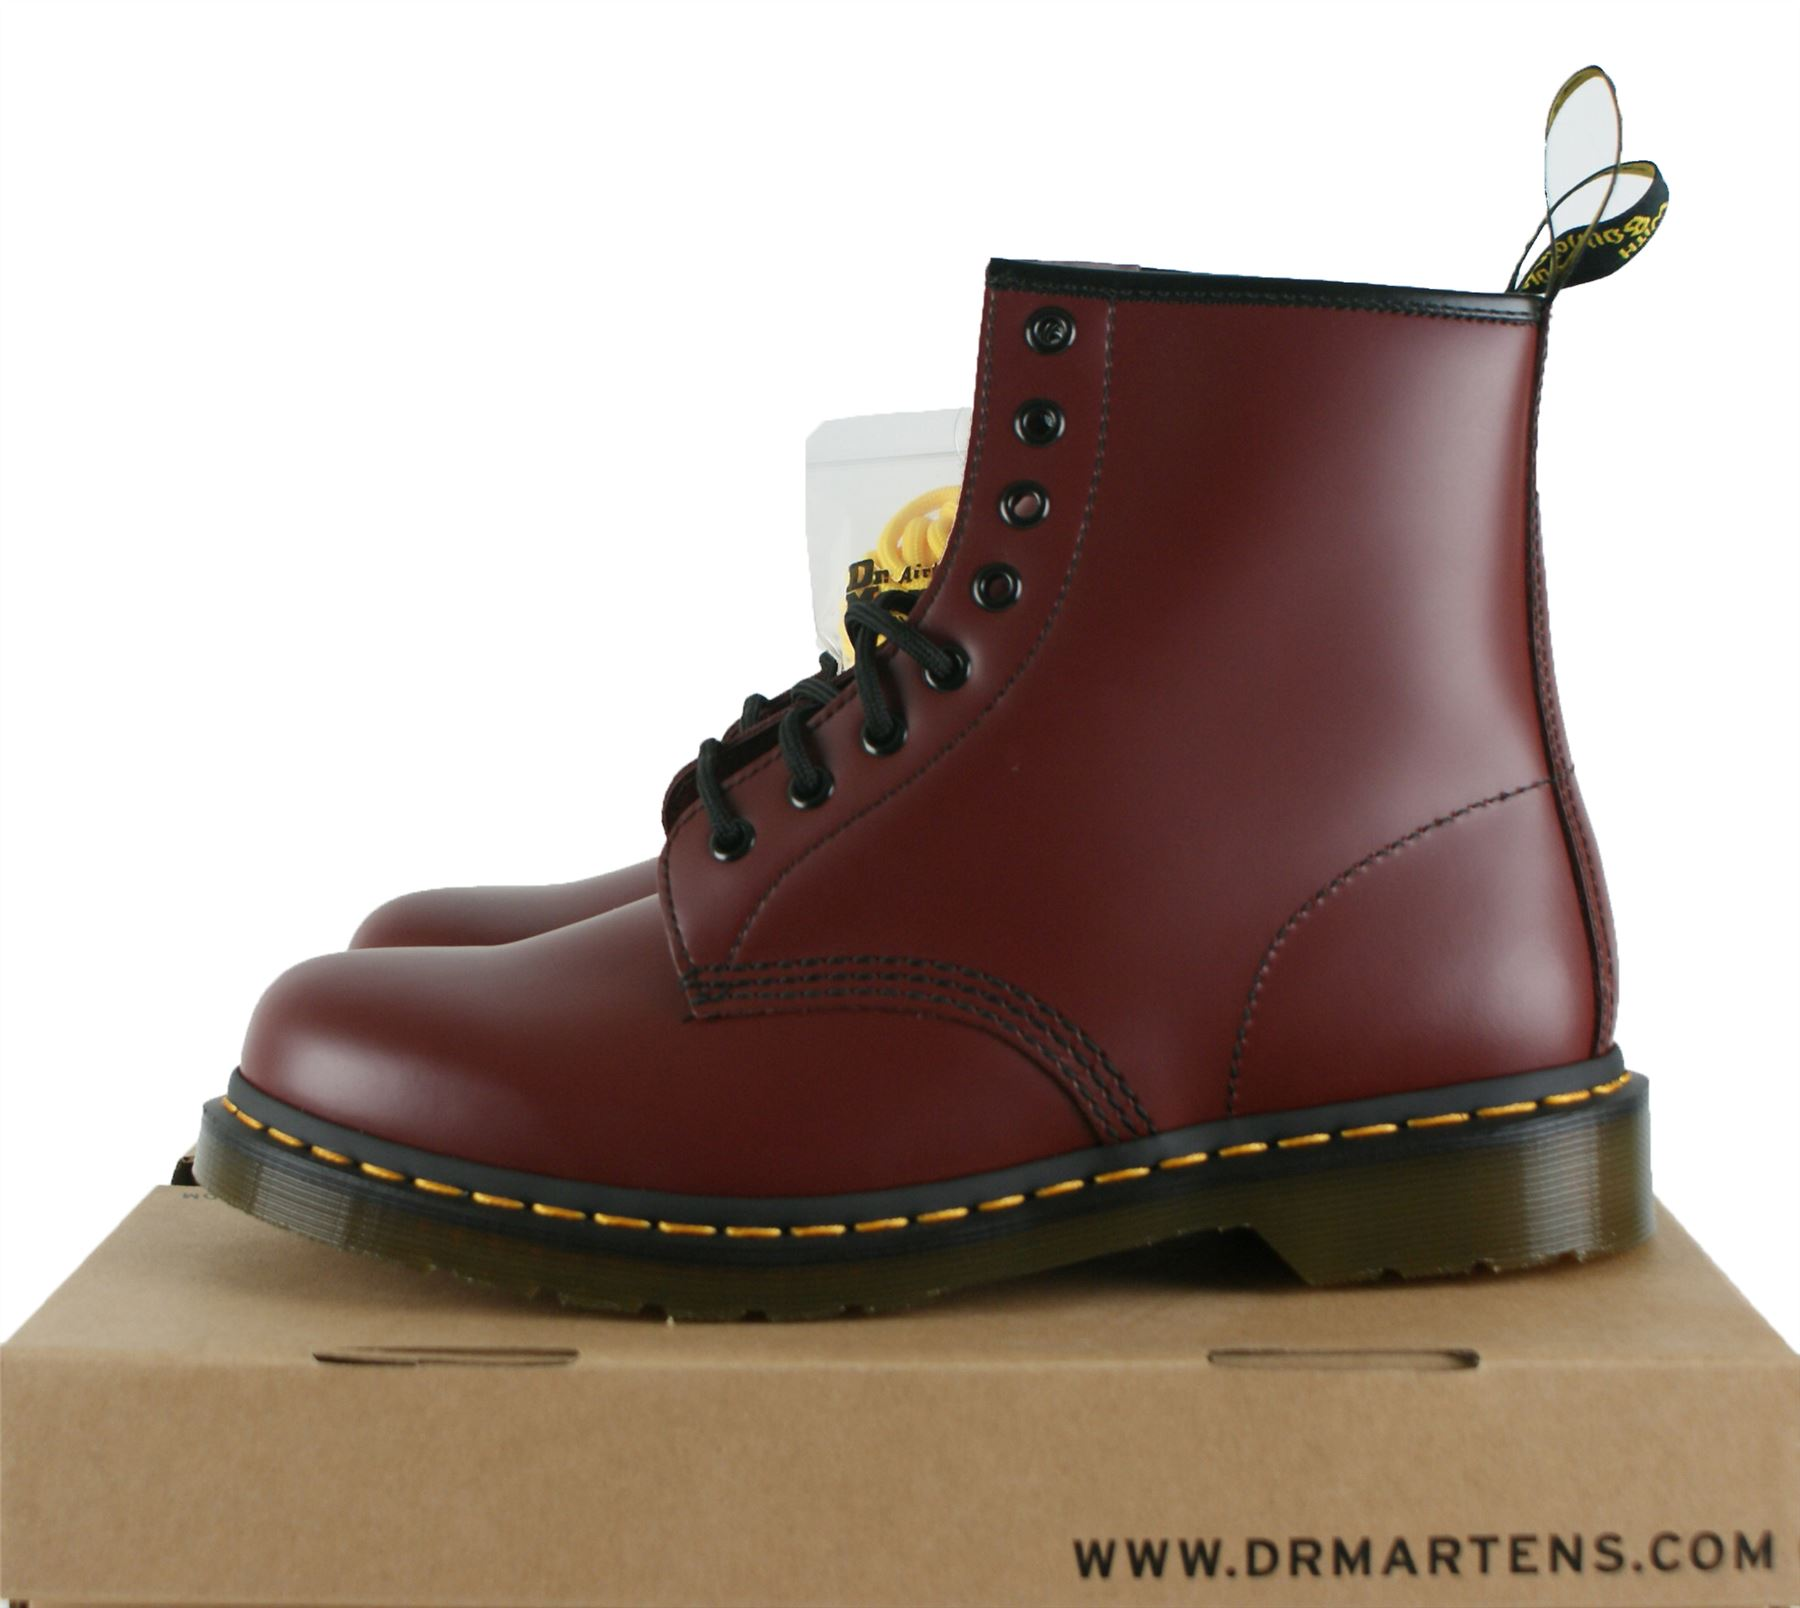 uk3 uk15 dr martens 1460 leather classic airwair 8 eyelet men boots cherry red ebay. Black Bedroom Furniture Sets. Home Design Ideas